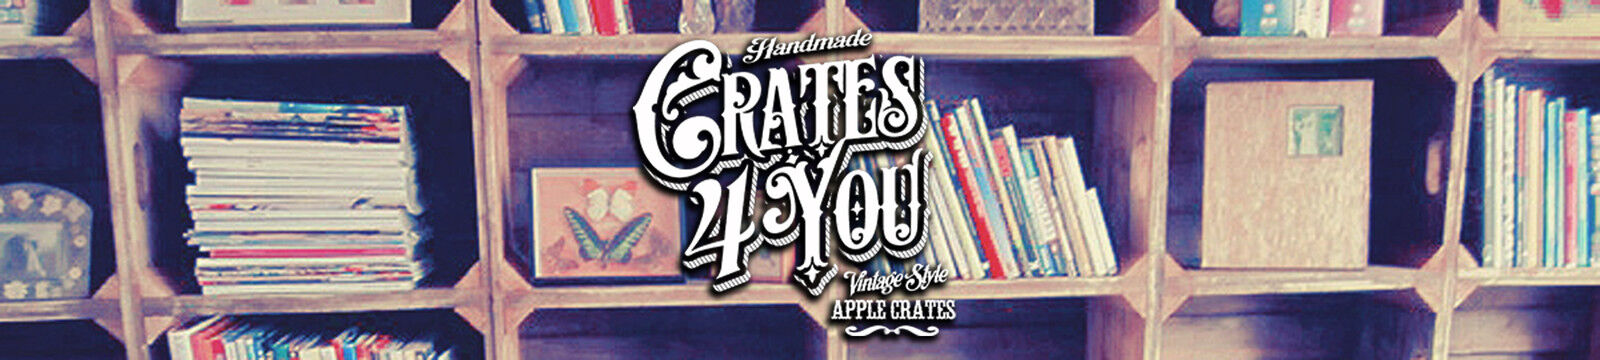 Crates4You